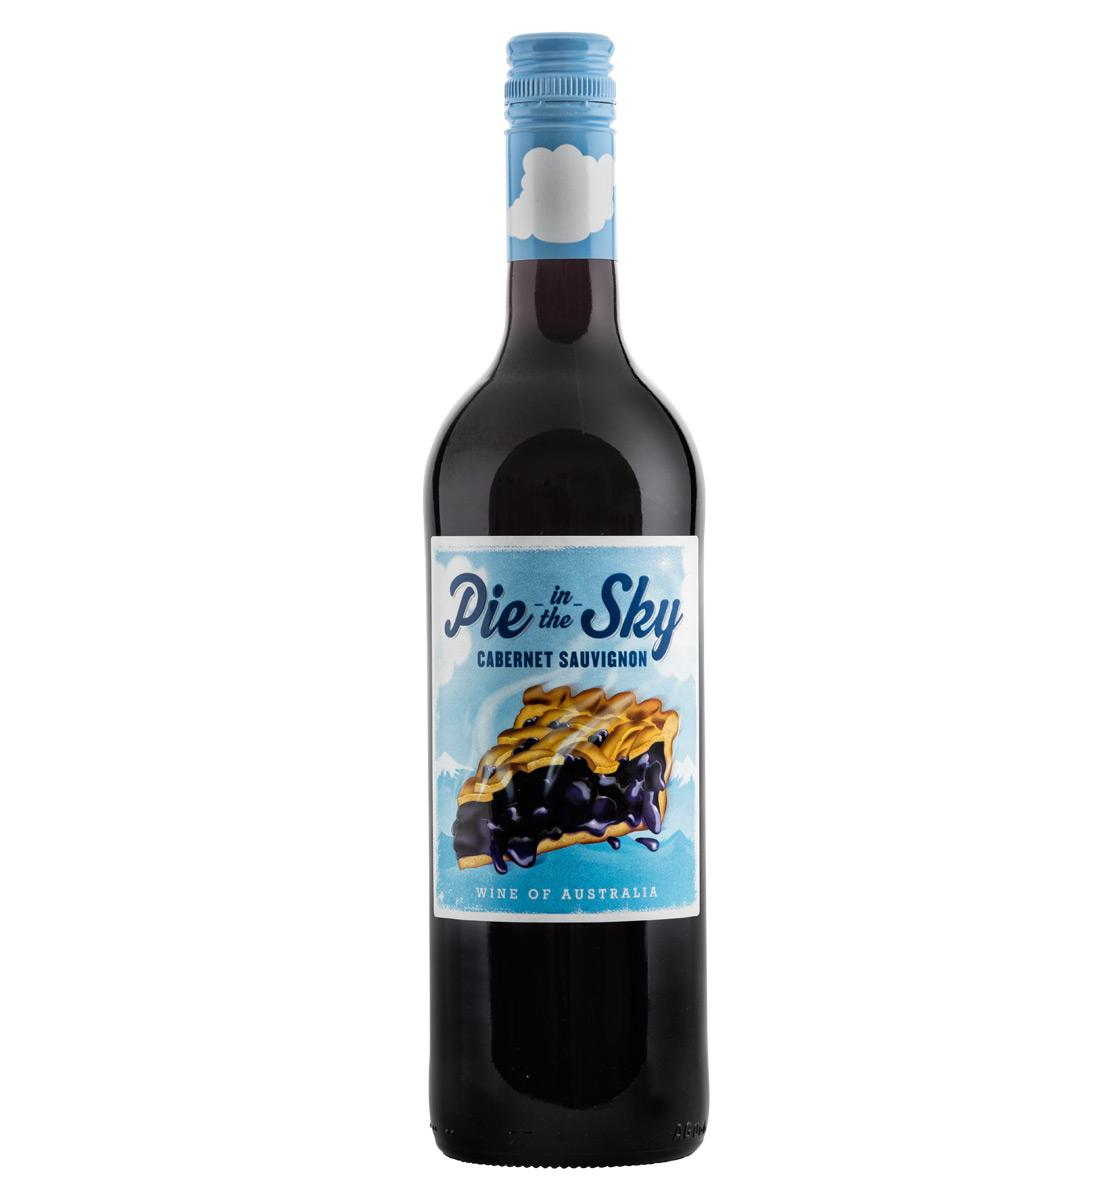 Pie in the Sky - Cabernet Sauvignon 2013